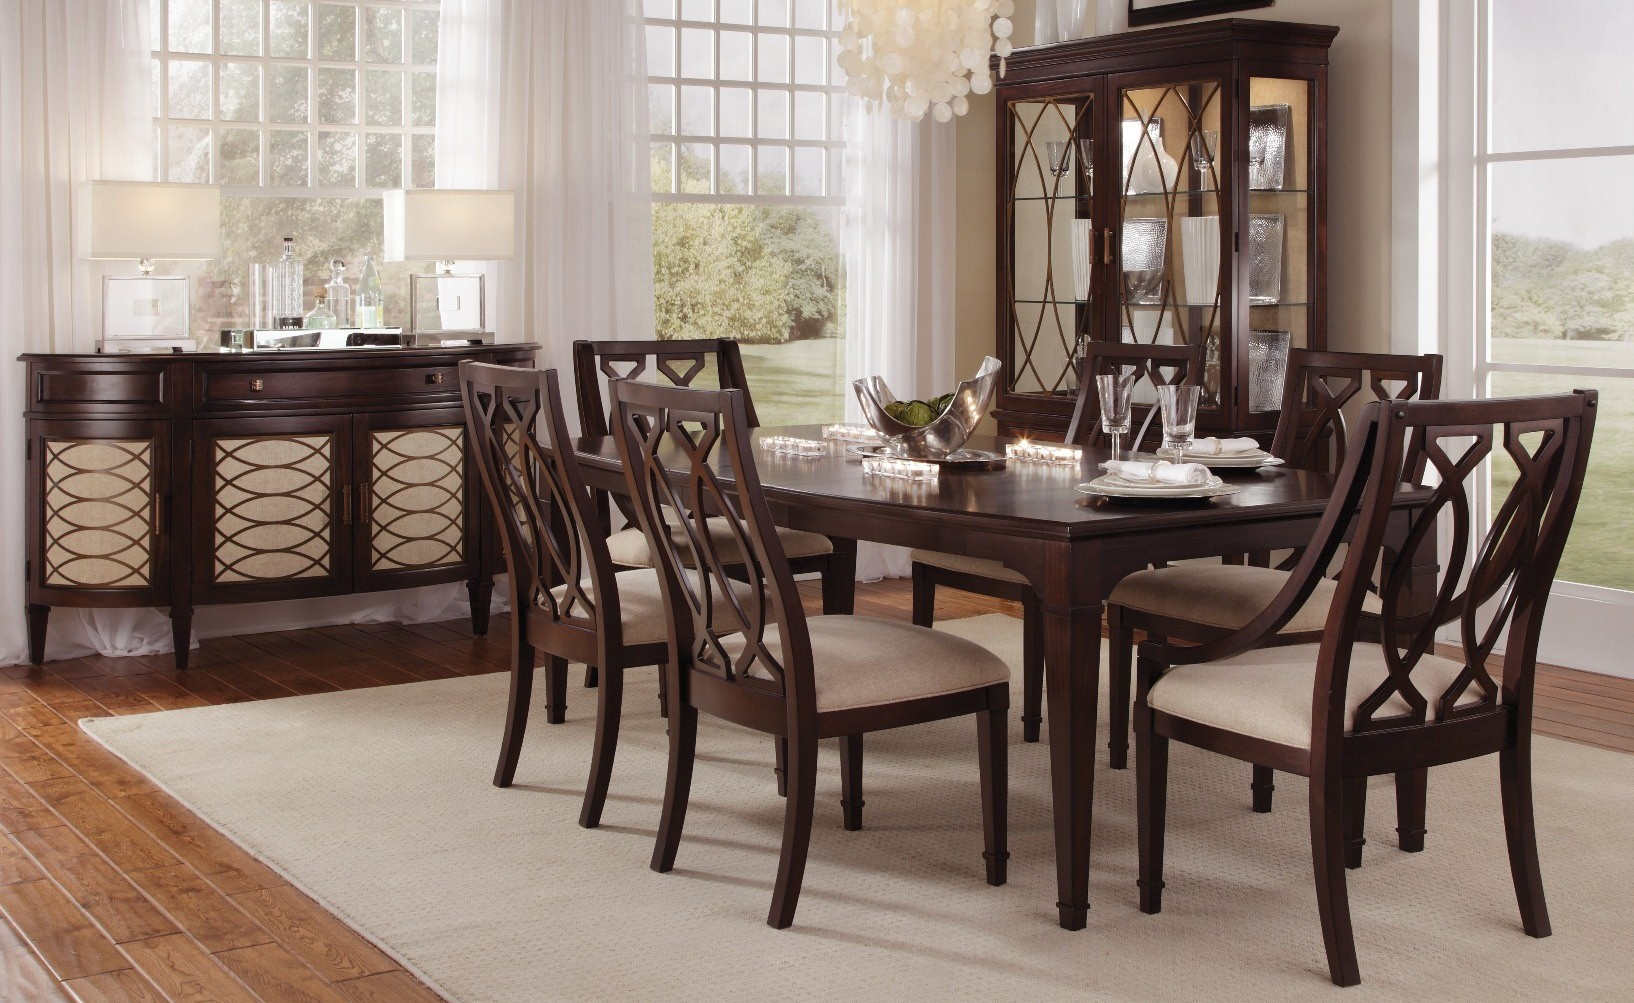 Intrigue Rectangular Extendable Dining Room Set From Art 161220 2636 Coleman Furniture